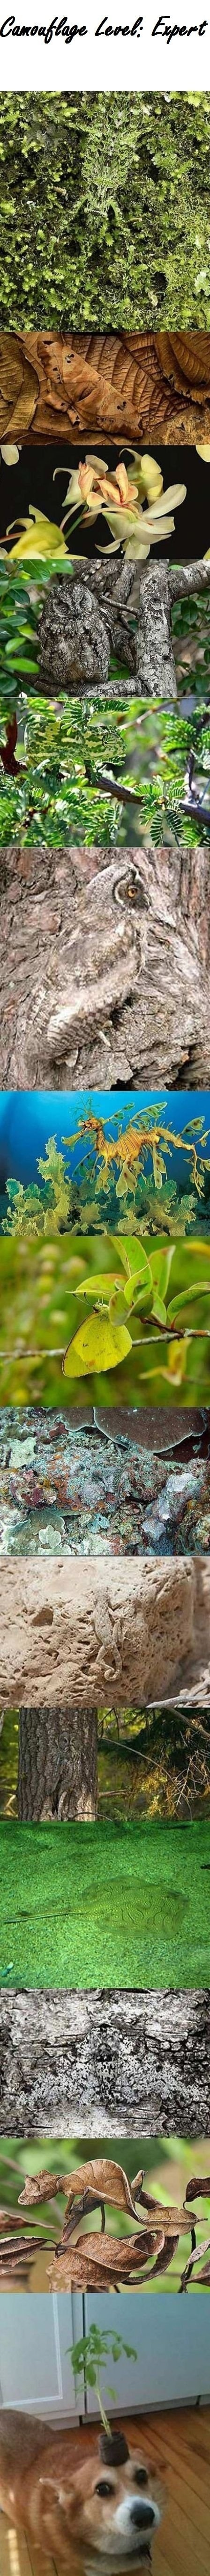 funny-picture-nature-camouflage-animals